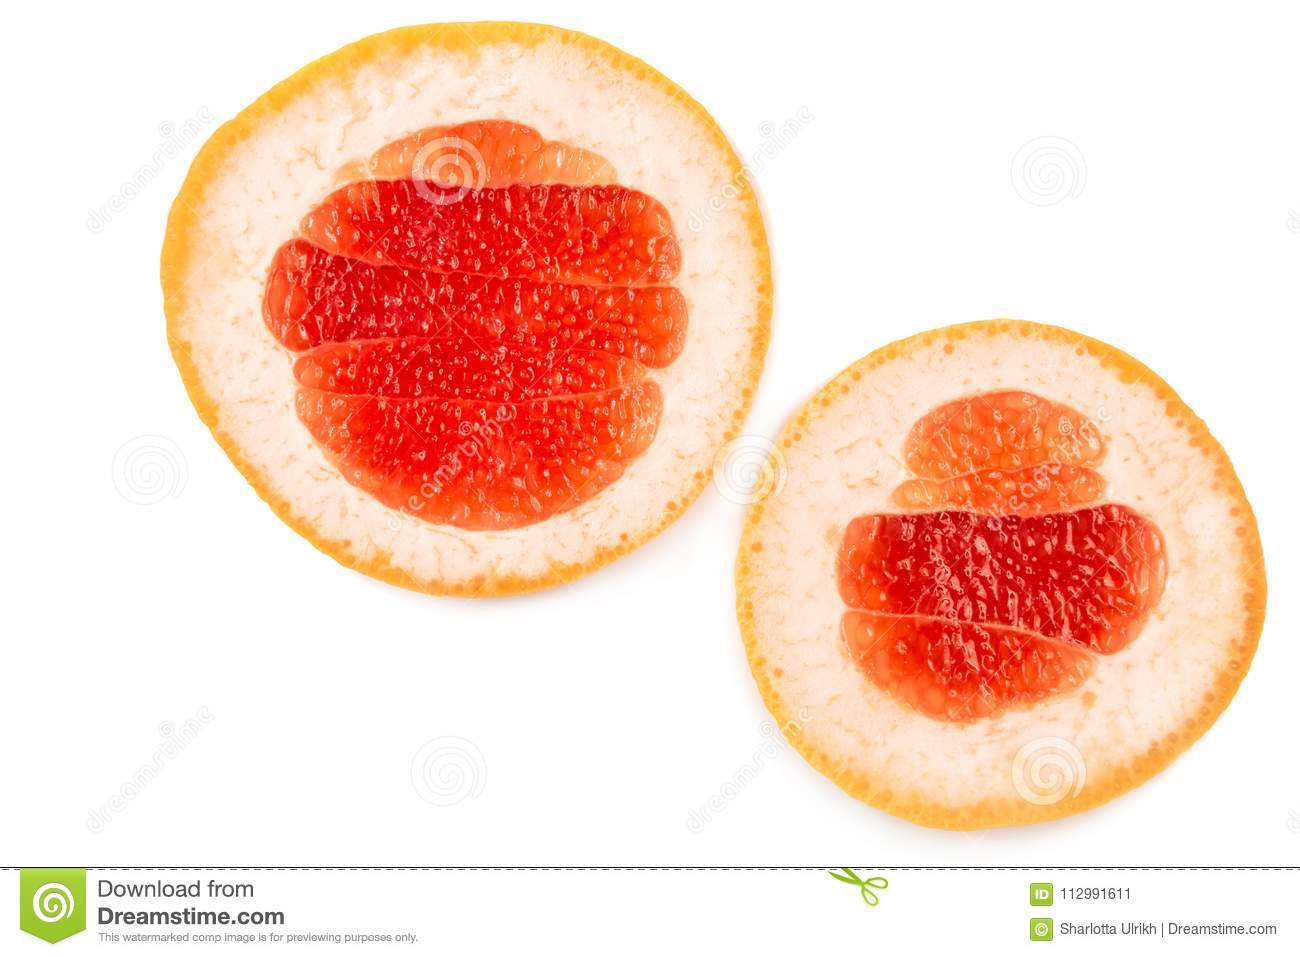 Close-up two halves of a delicious grapefruit isolated over the white background.